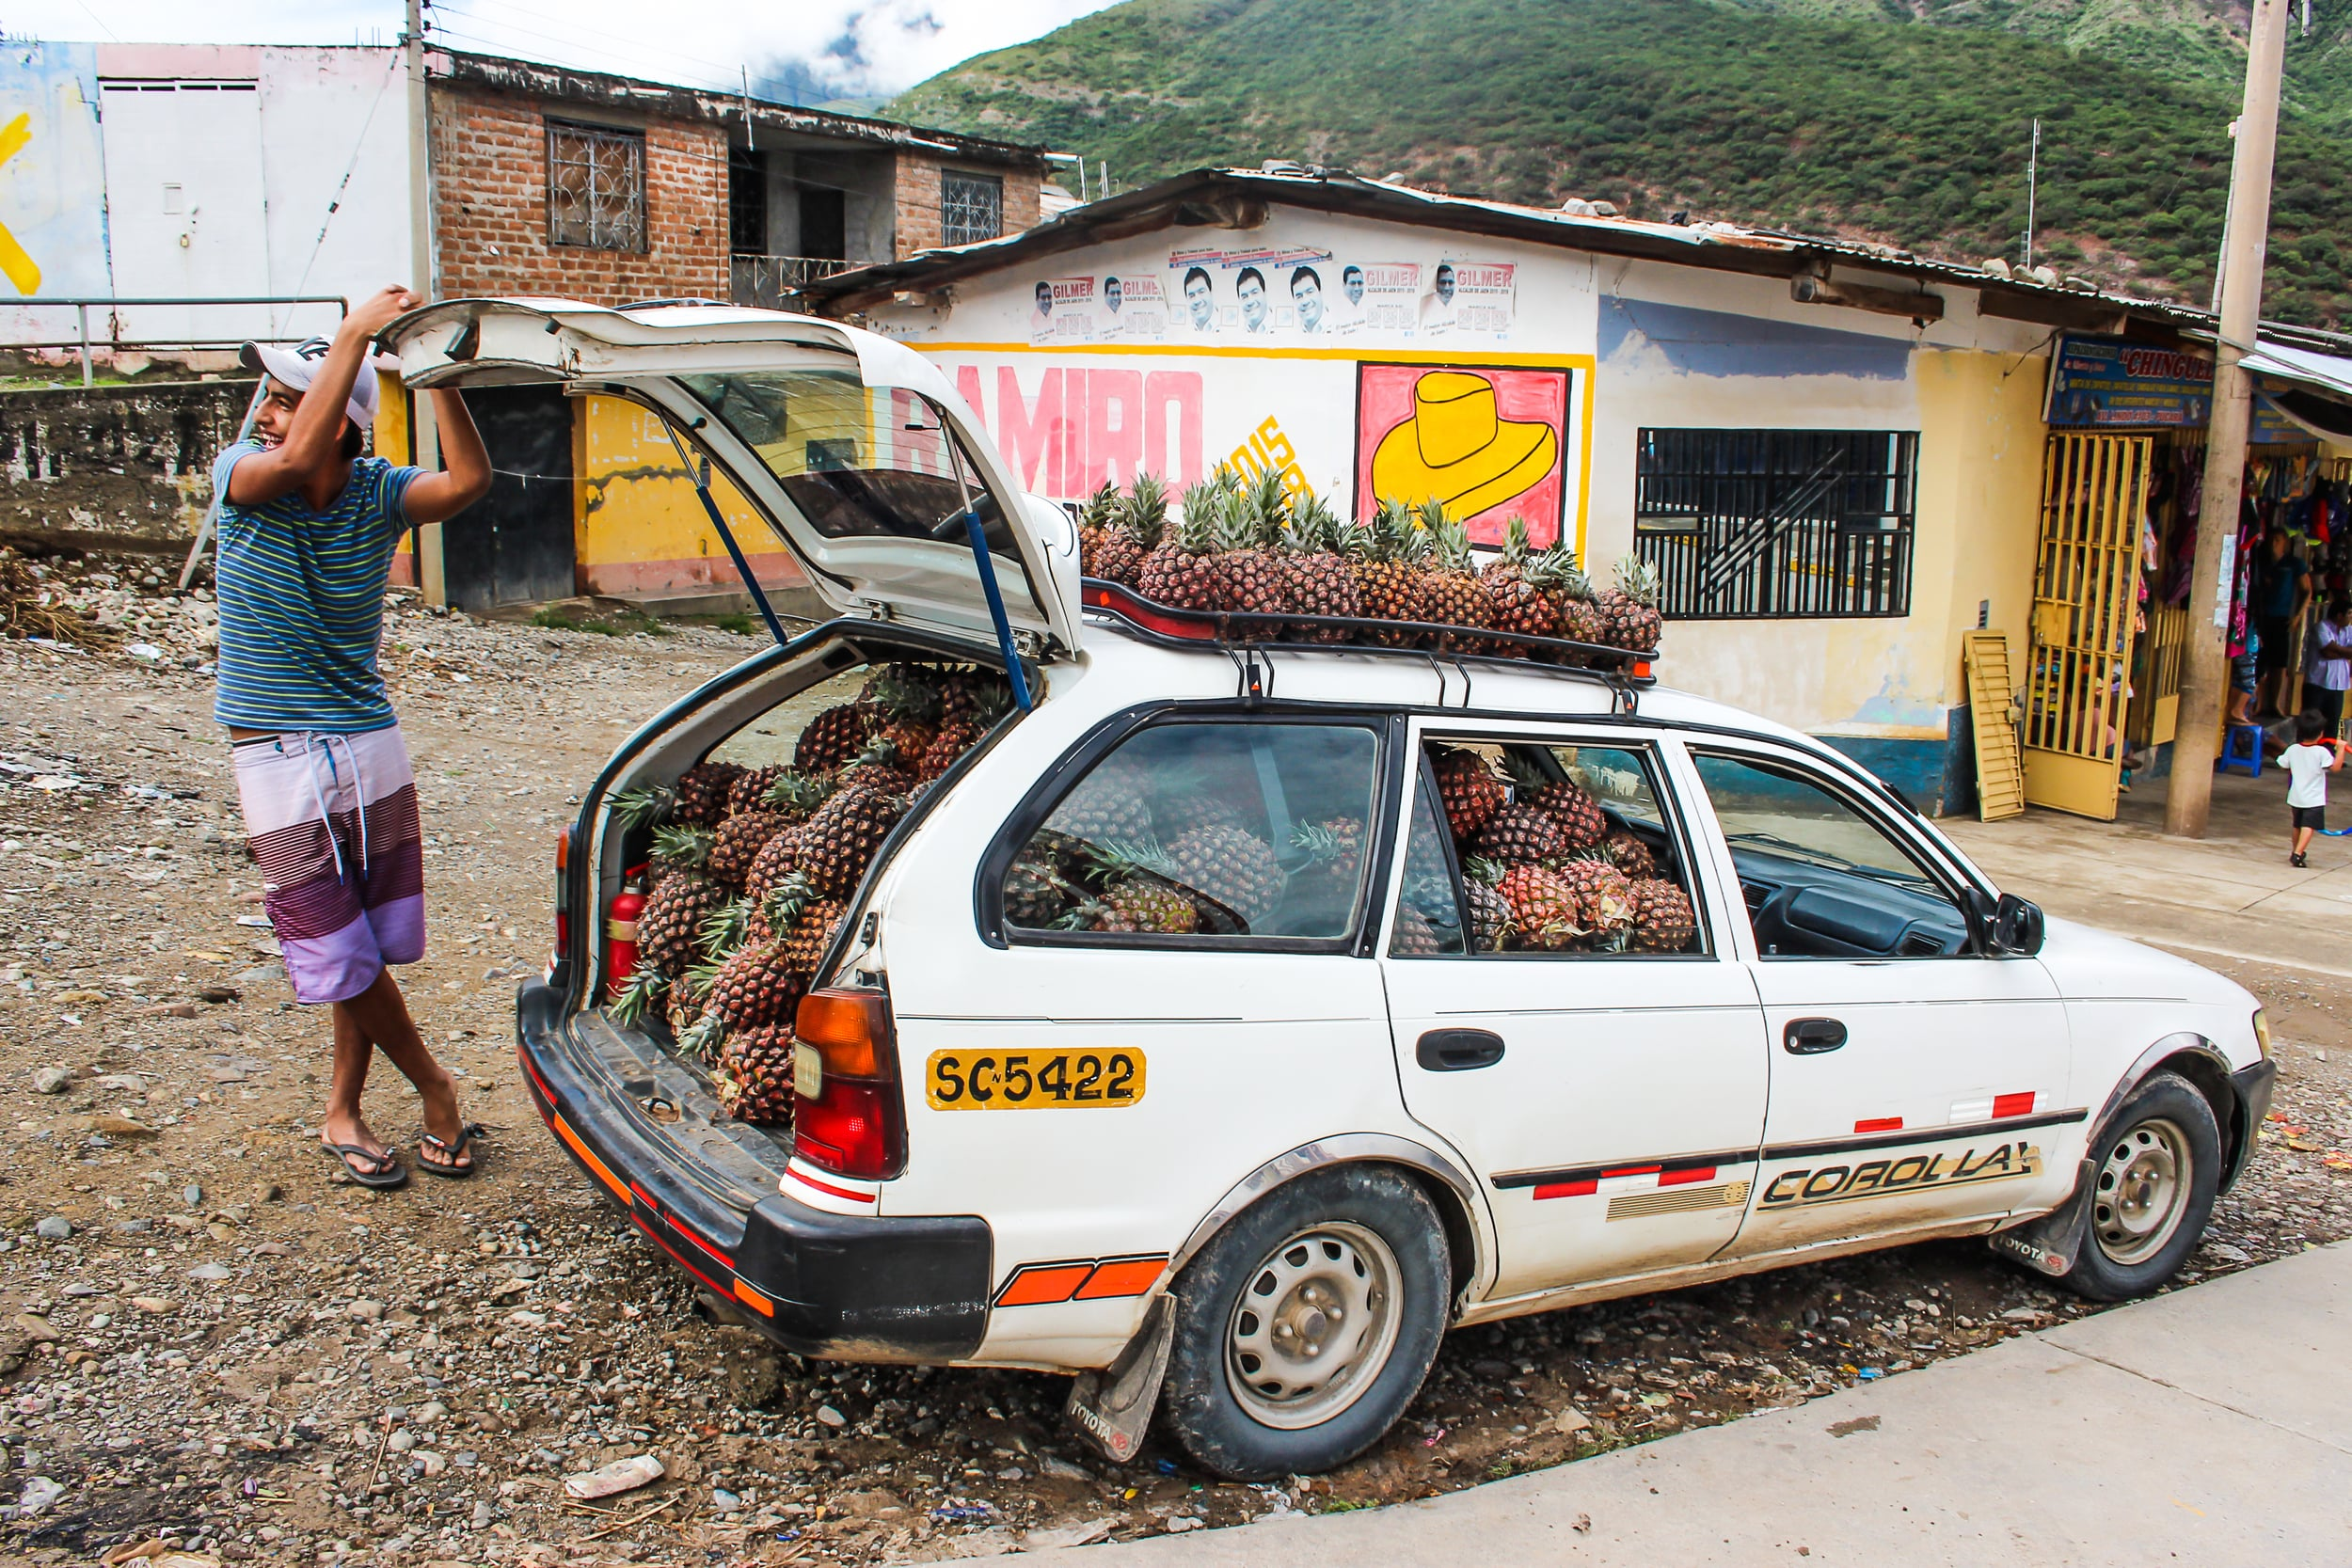 A pineapple vender takes advantage of a seven hour delay on a busy highway connecting the Amazon and the coast in Perú.    The road was blocked by debris that fell during heavy rain next to the small roadside town of Pucará. Throughout Perú, many roads collapsed or closed due to extreme weather during the rainy season in 2015.